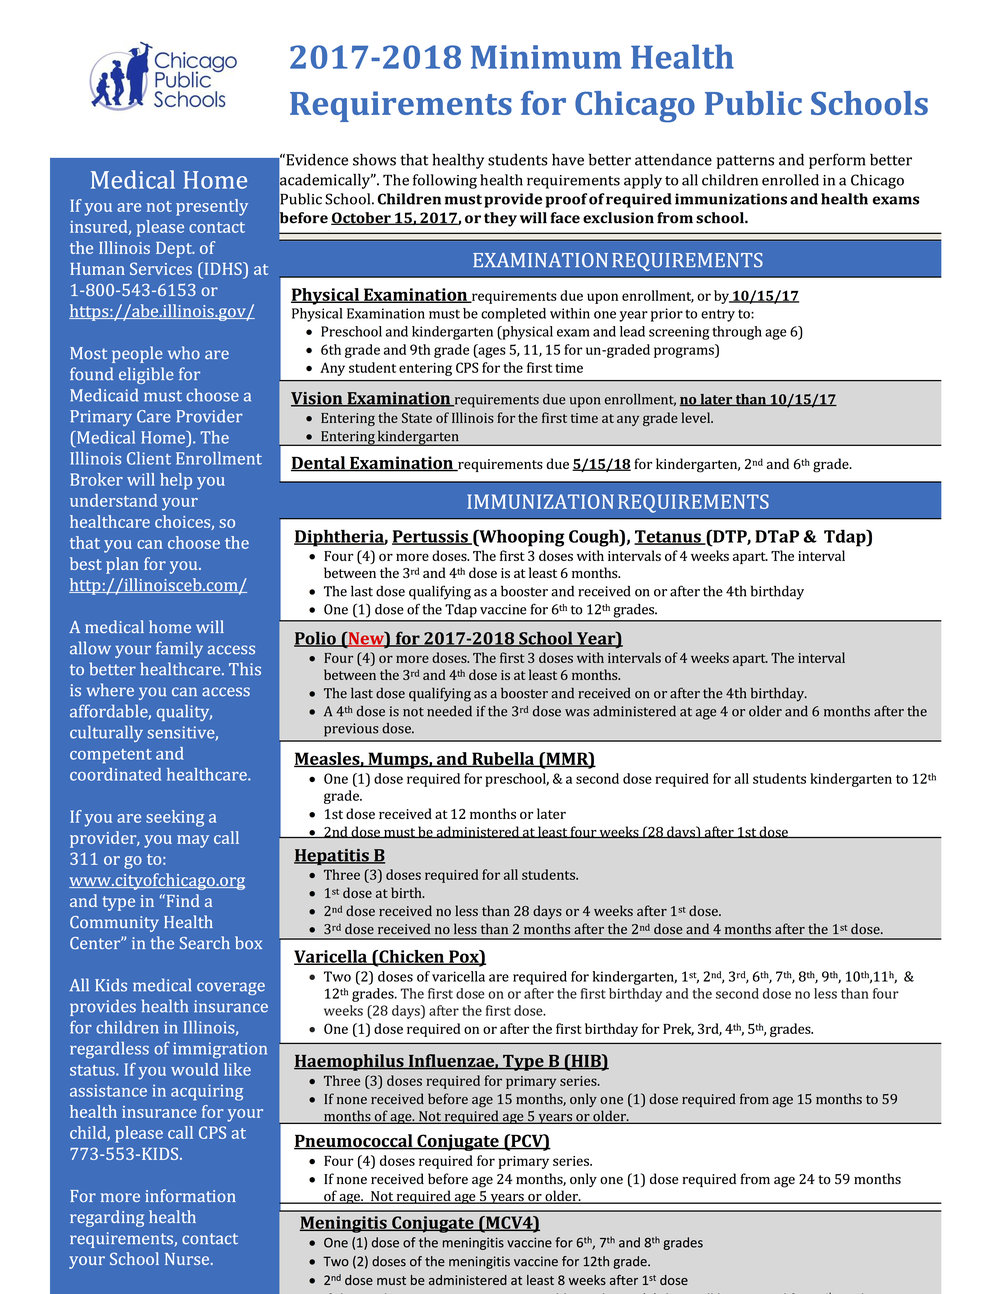 2017-2018 English Minimum Health Requirements (WORD) (updated) (8) (1) 2.jpg